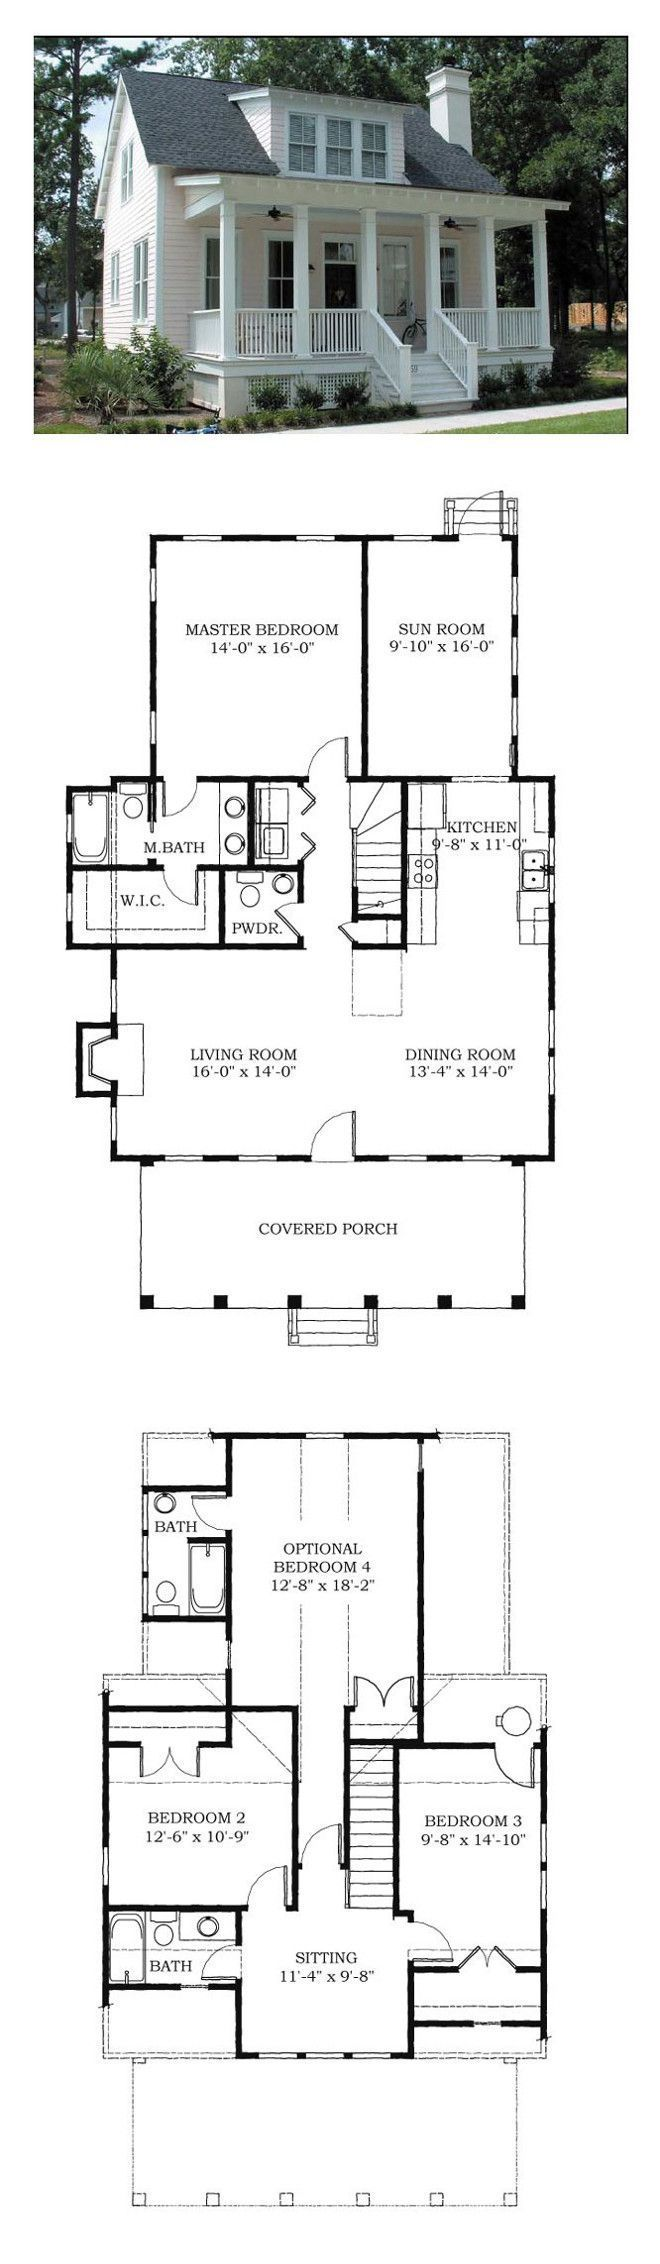 17 Best ideas about Small House Plans on Pinterest   Small house floor plans   Tiny house plans and Small home plans. 17 Best ideas about Small House Plans on Pinterest   Small house